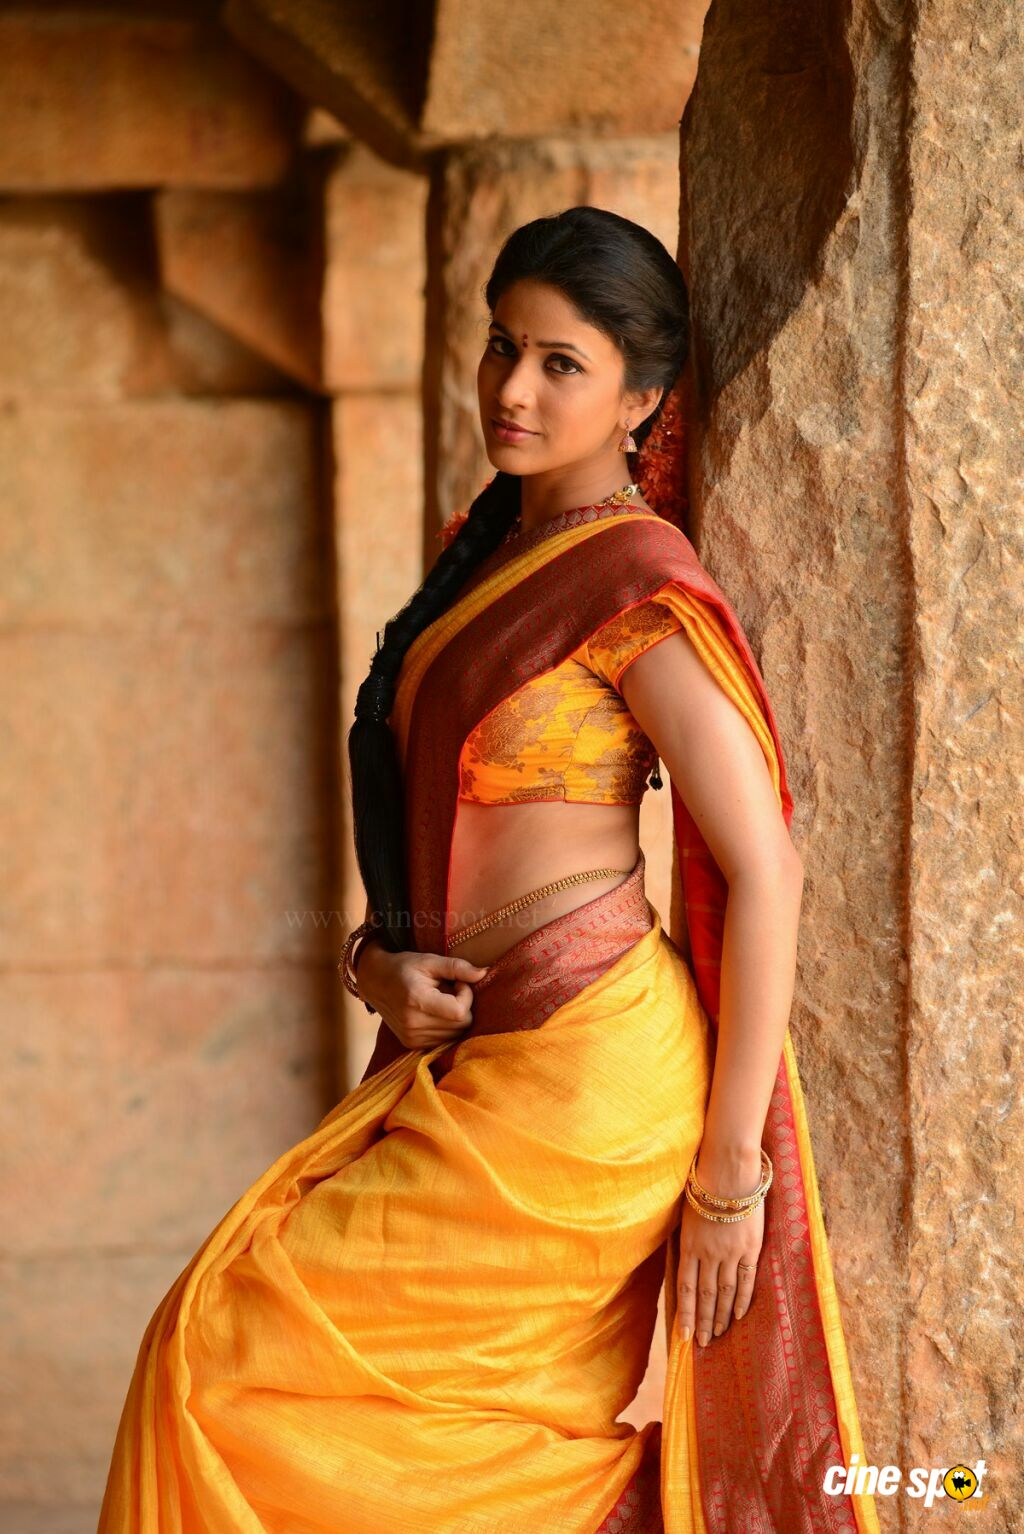 Lavanya Tripathi nudes (77 foto and video), Pussy, Leaked, Instagram, see through 2006